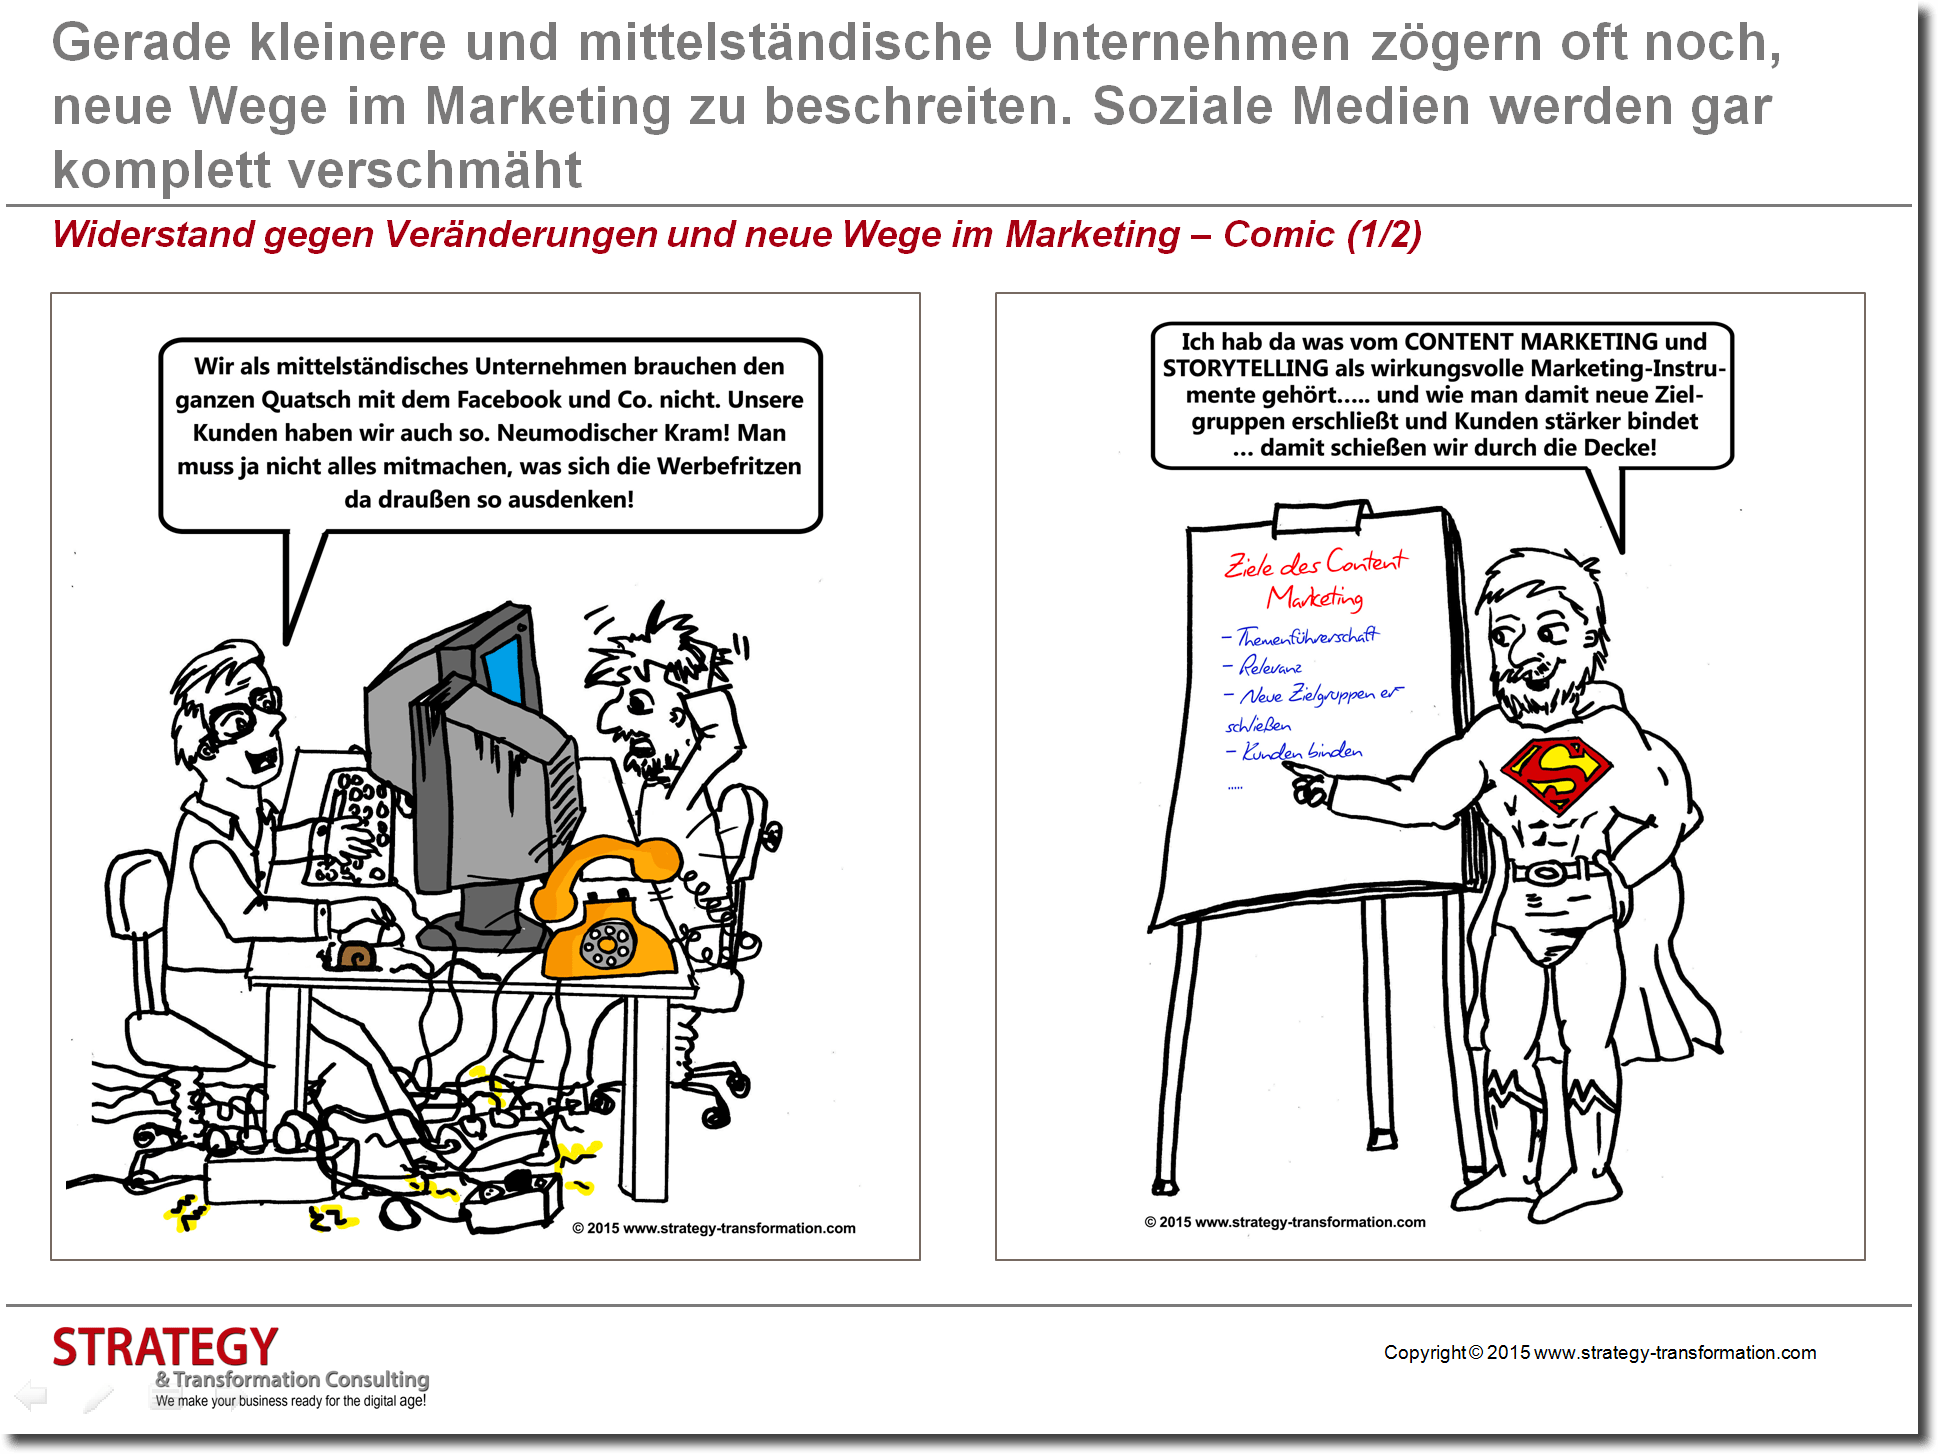 Neue Wege im Marketing - Comic